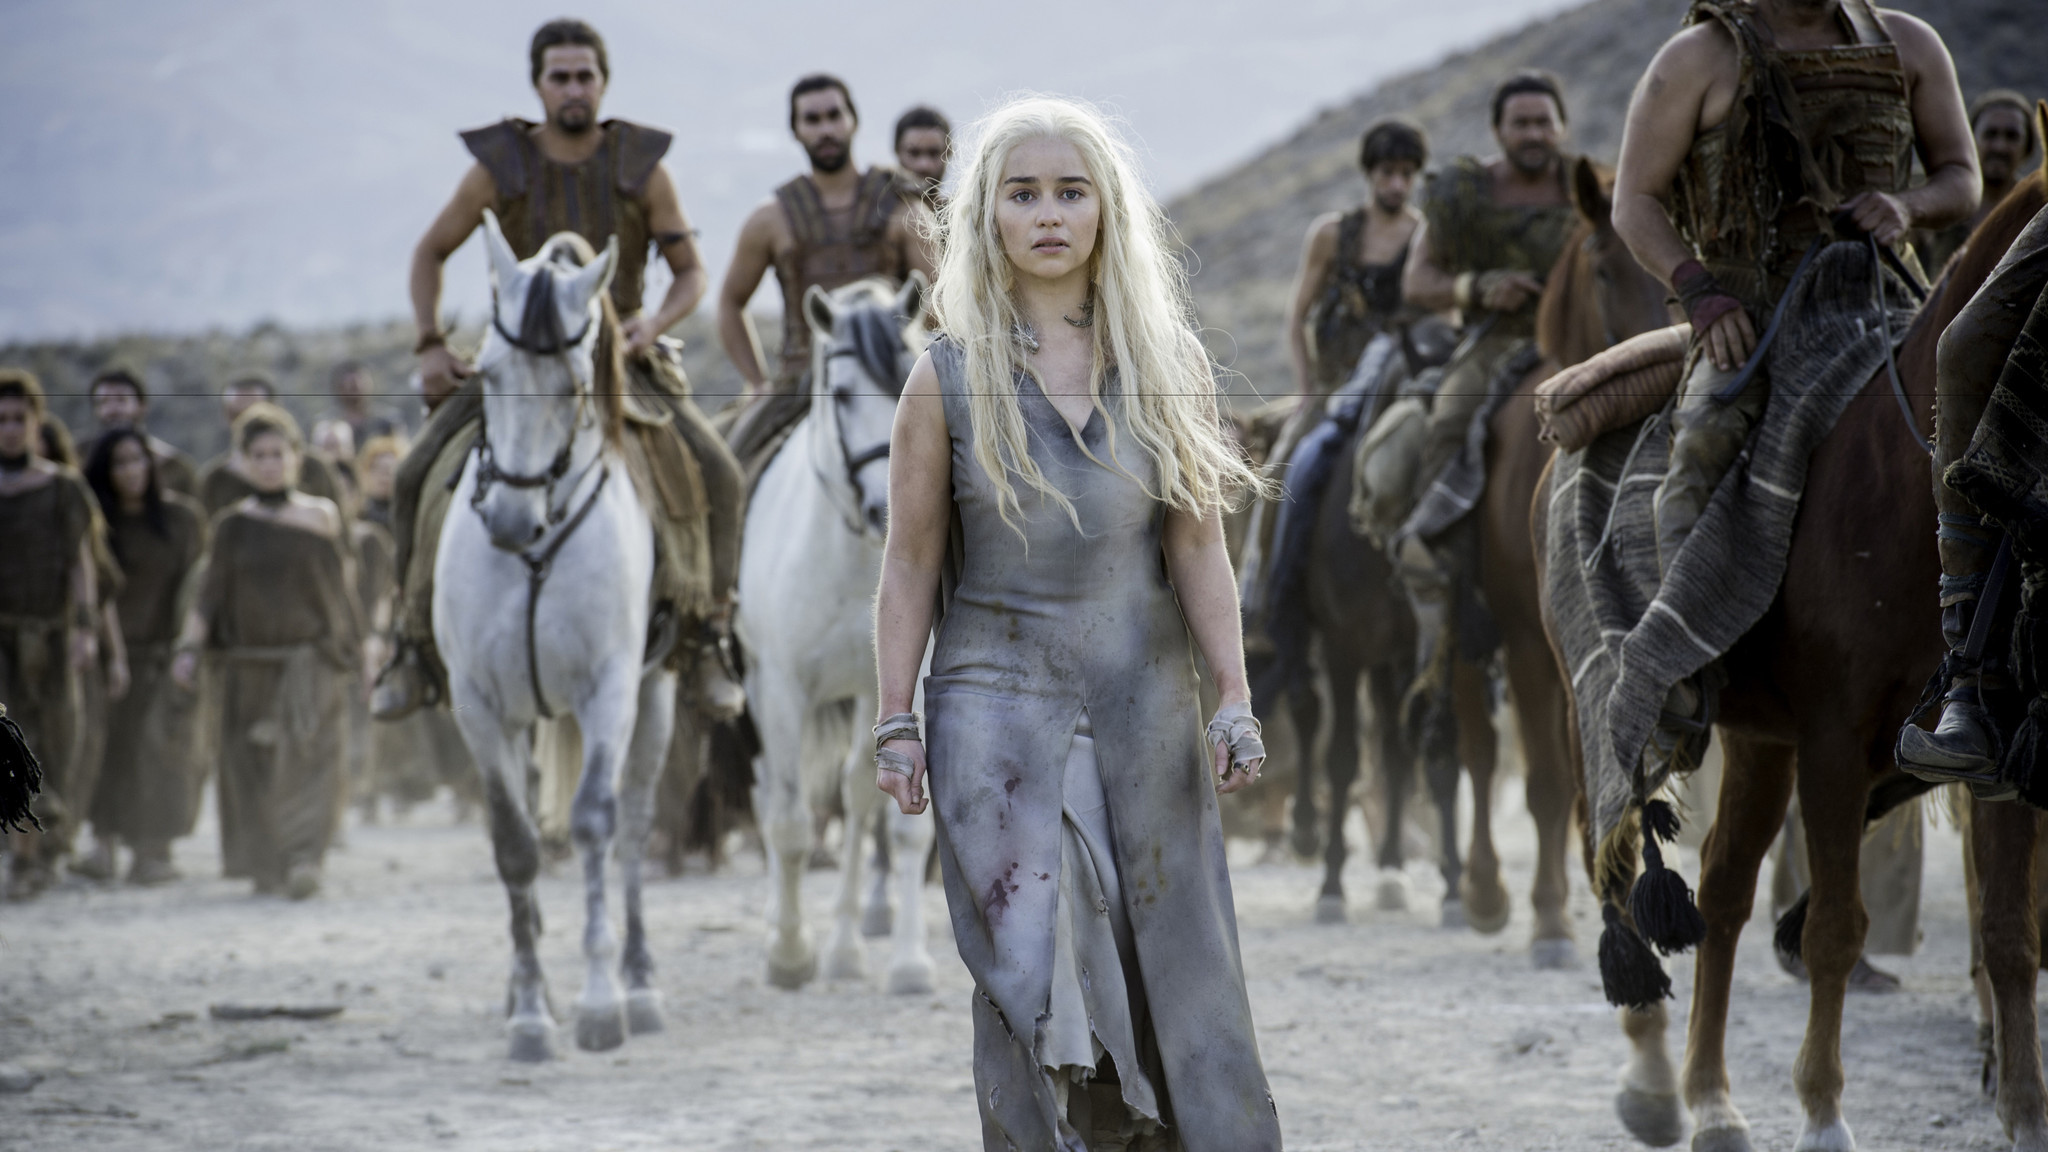 'Game of Thrones' and 'Outlander' top our summer TV binge list